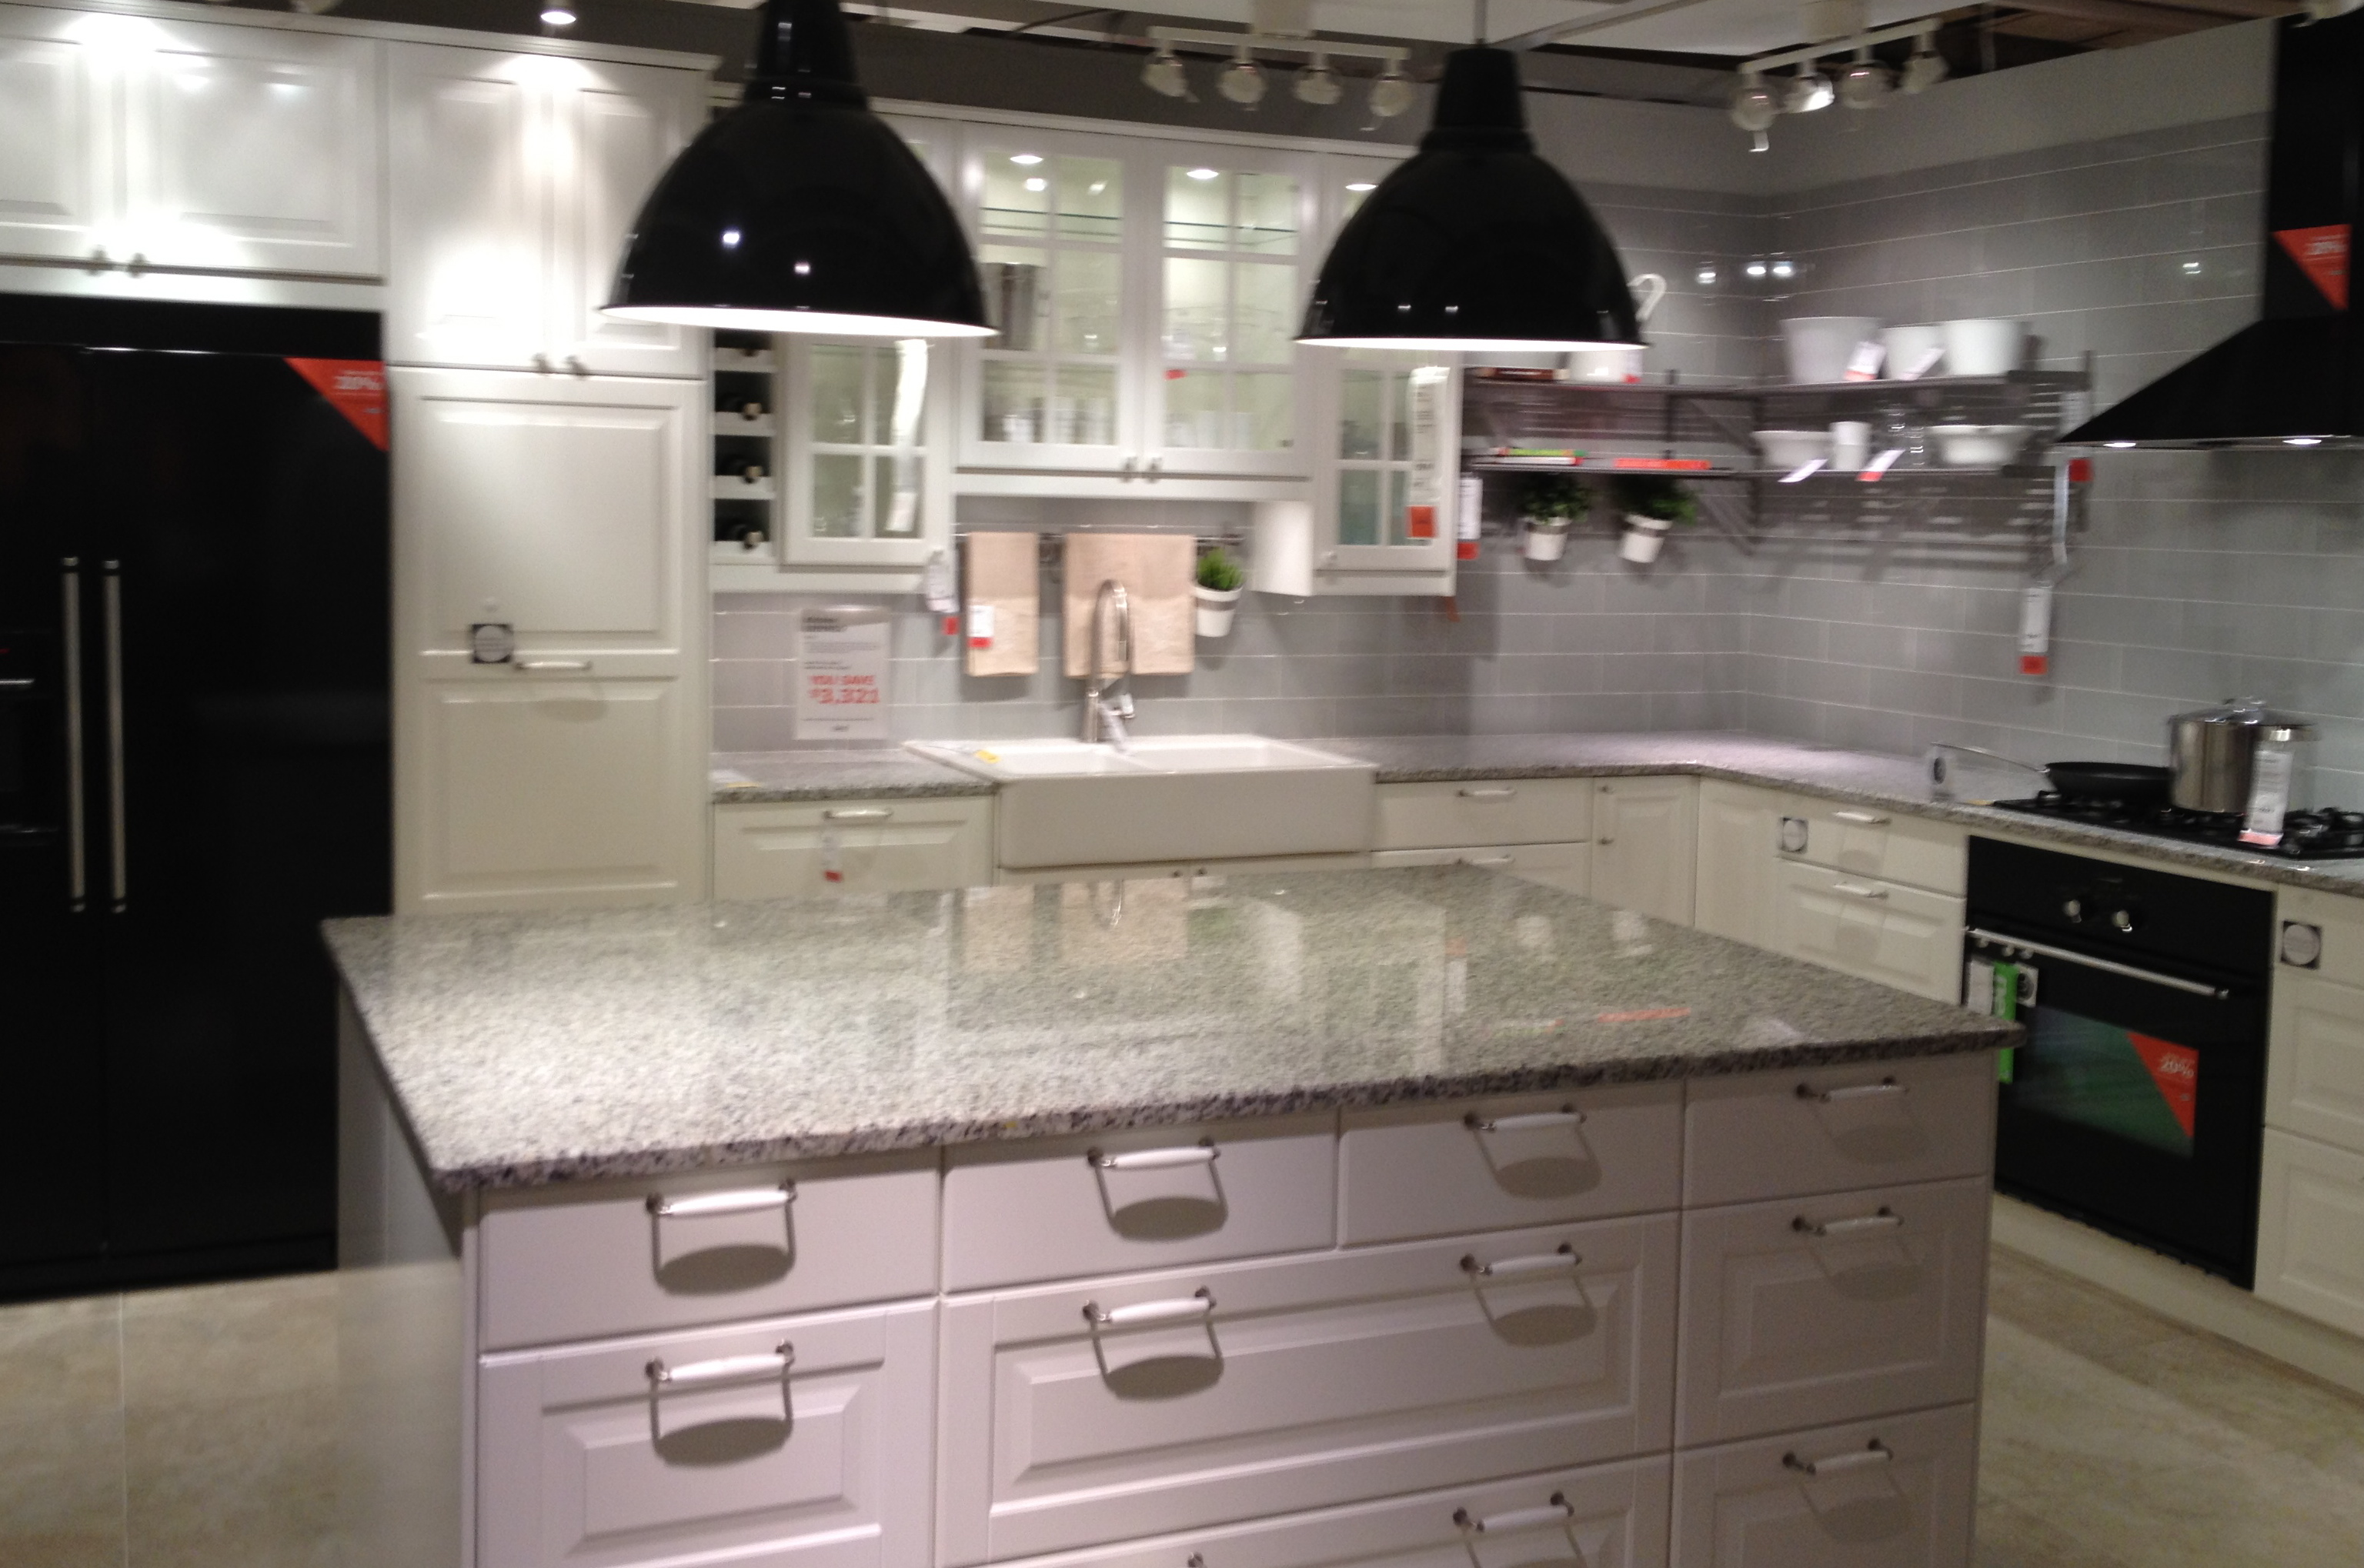 1000+ images about Instant Granite on Pinterest